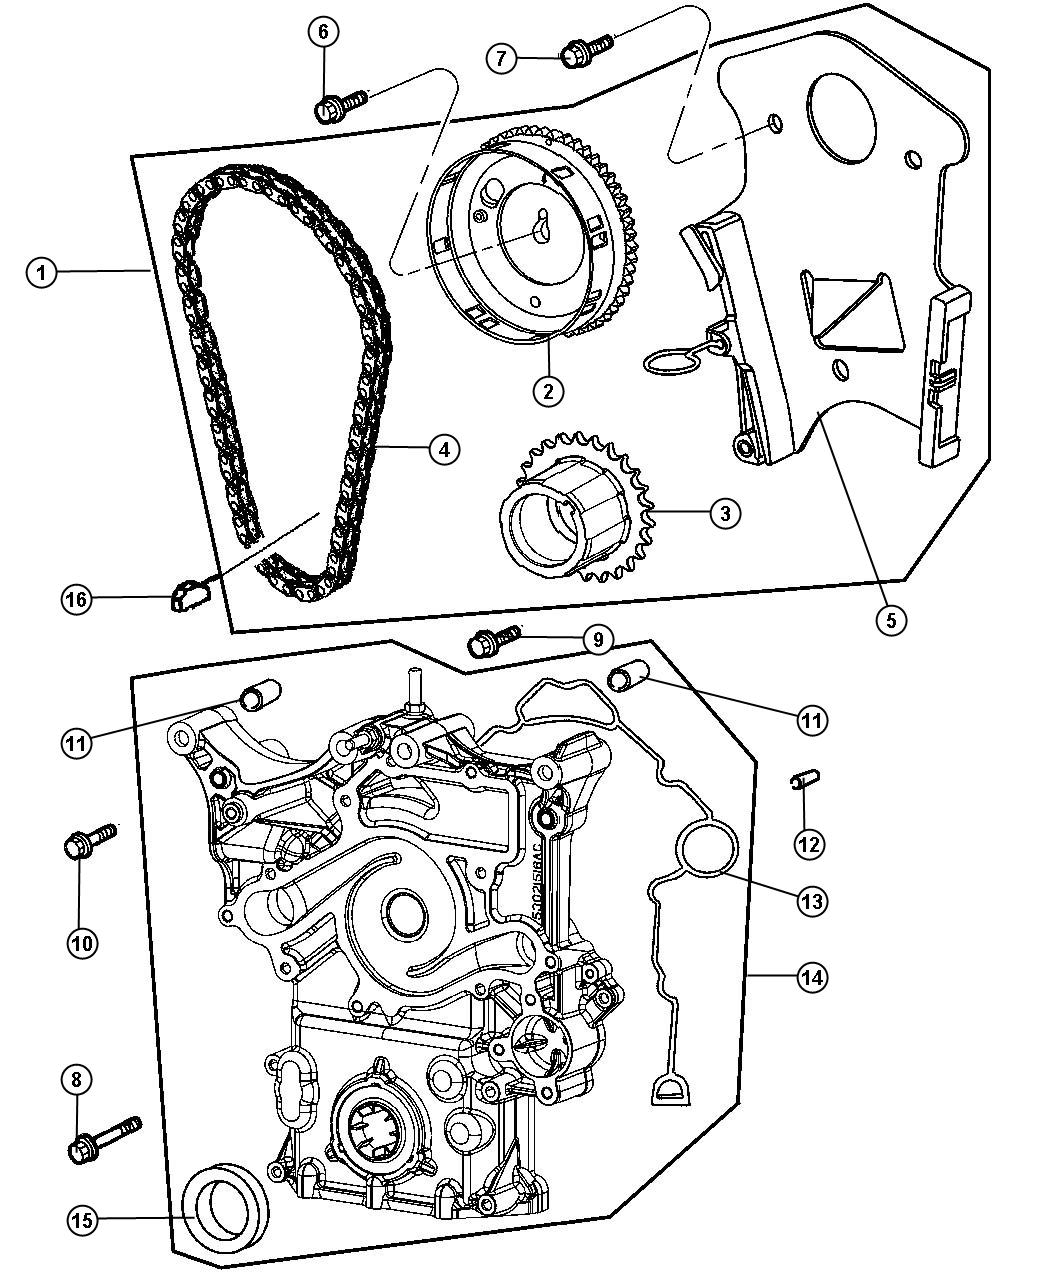 service manual  2007 chrysler aspen timing chain